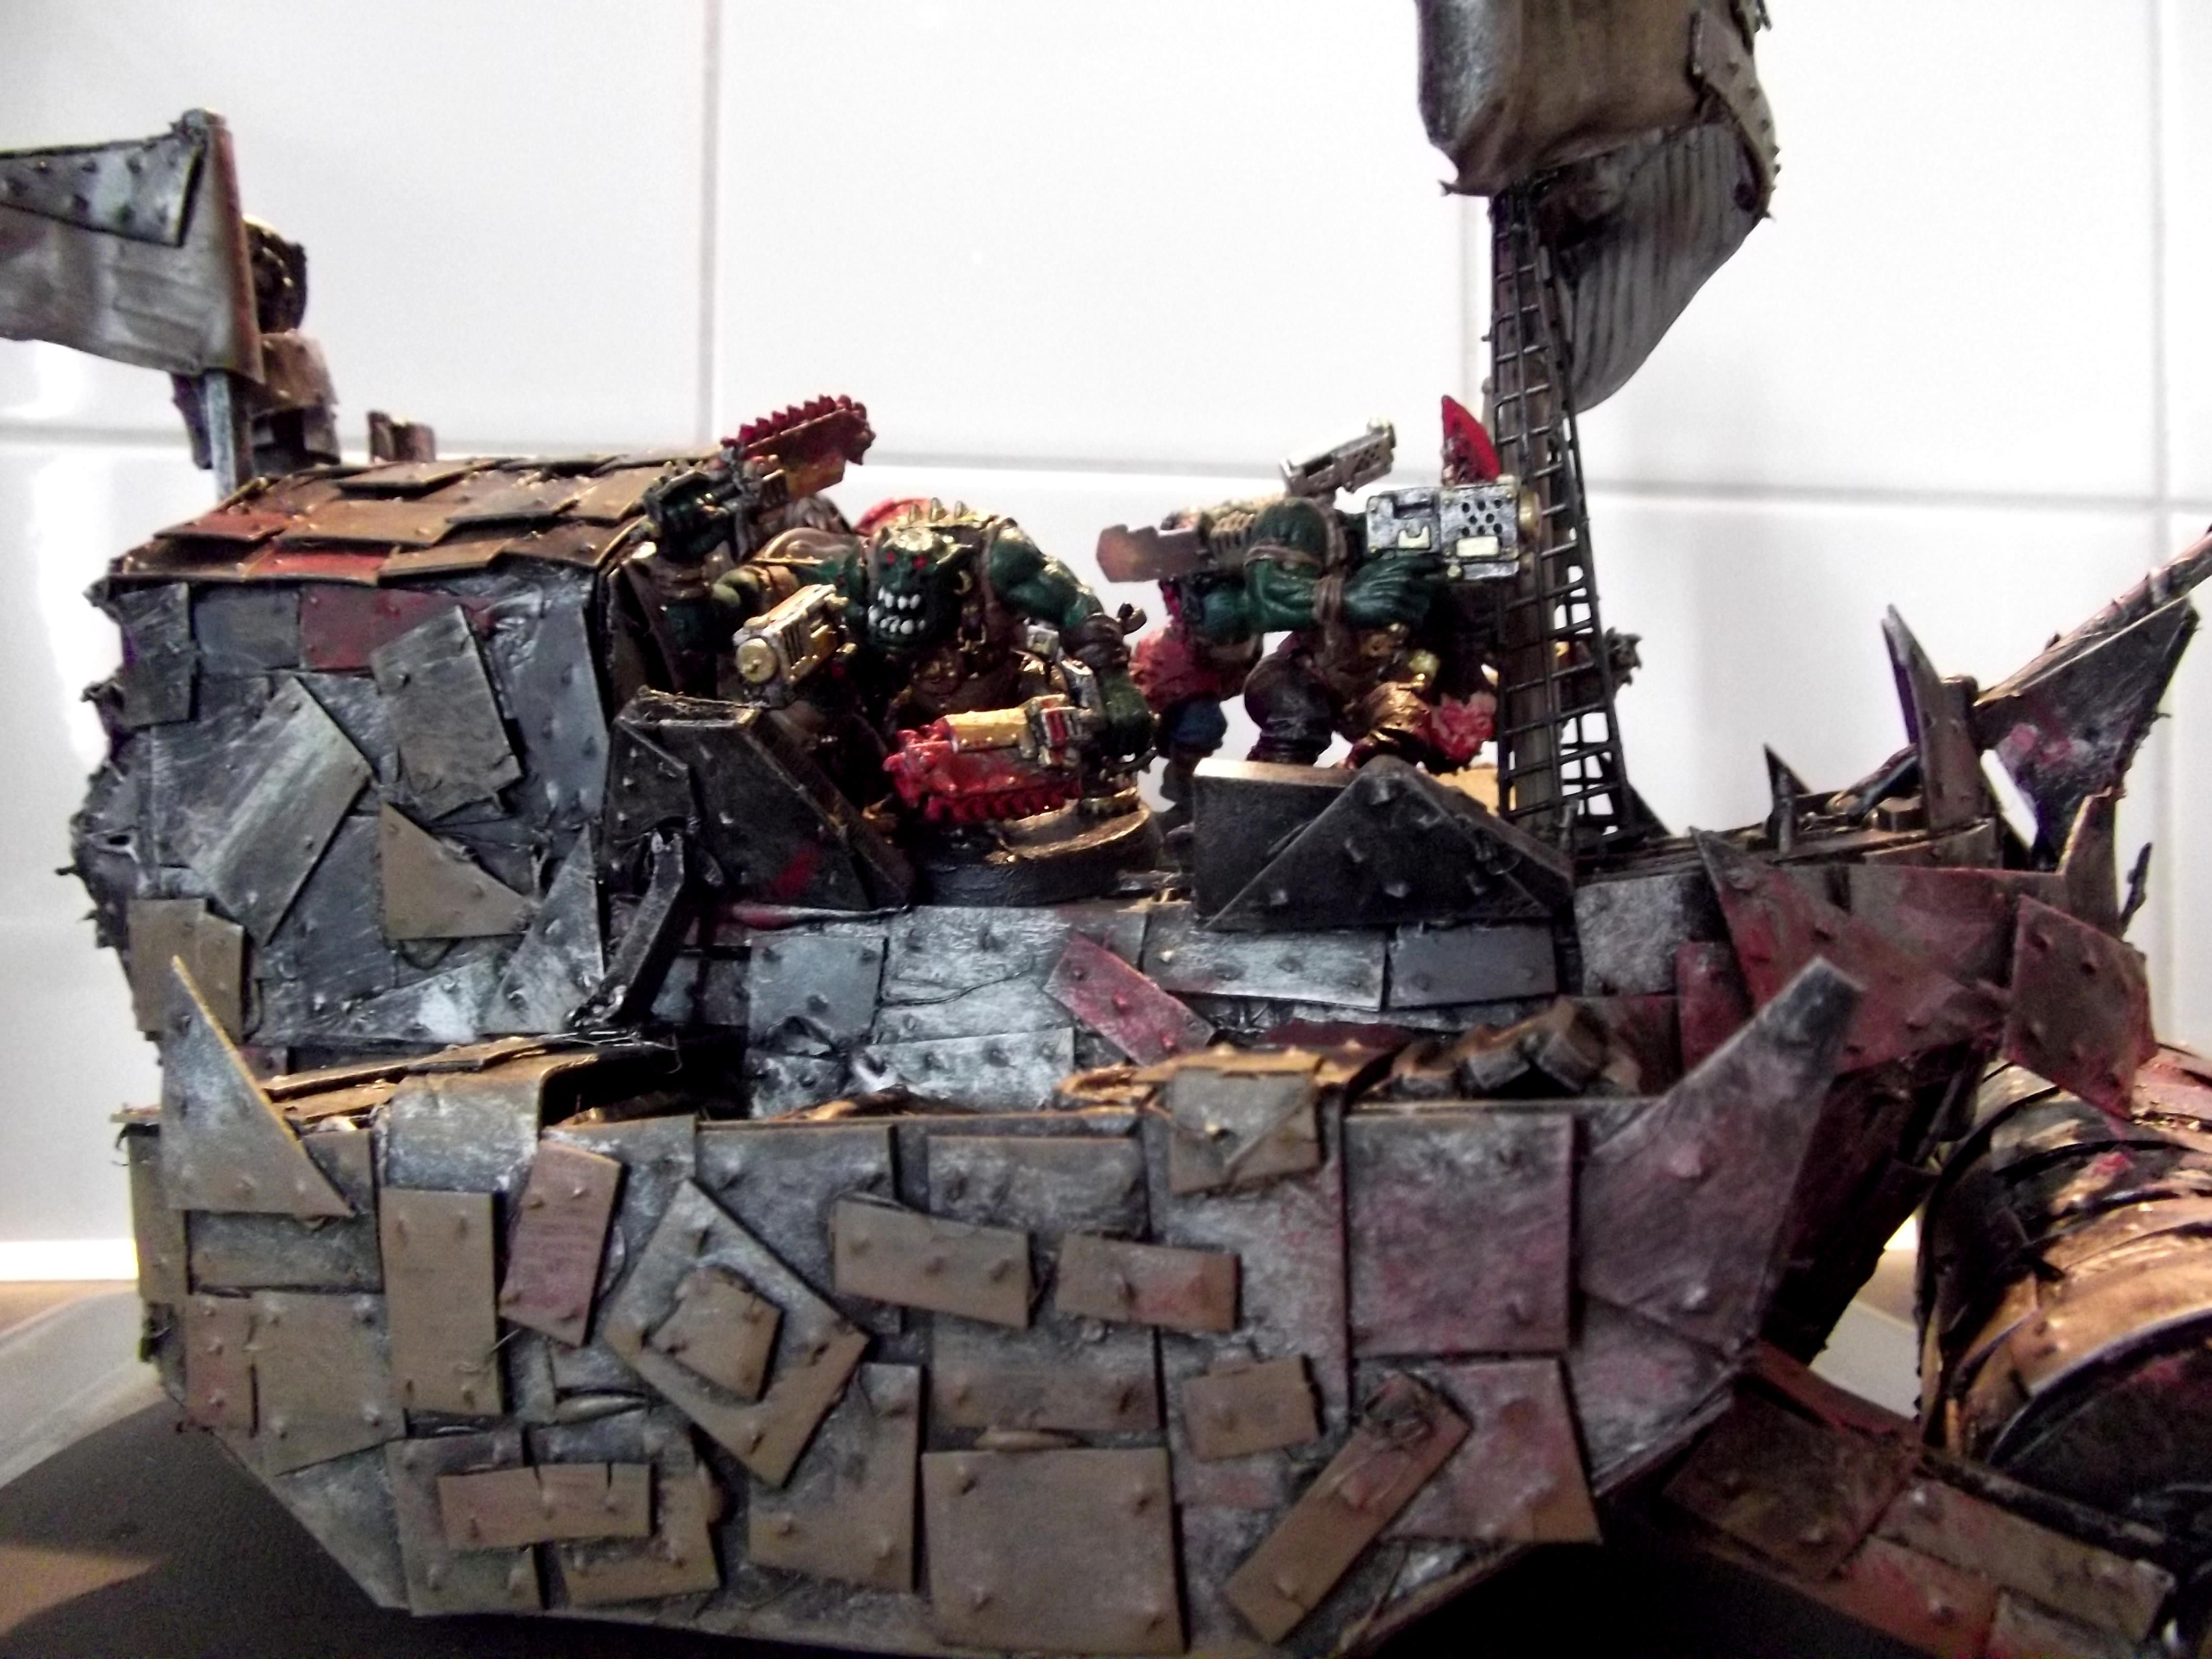 Battlewagon, Conversion, Deffrolla, Freebooter, Looted, Orky, Pirate Freeboota, Scratch Build, Ship